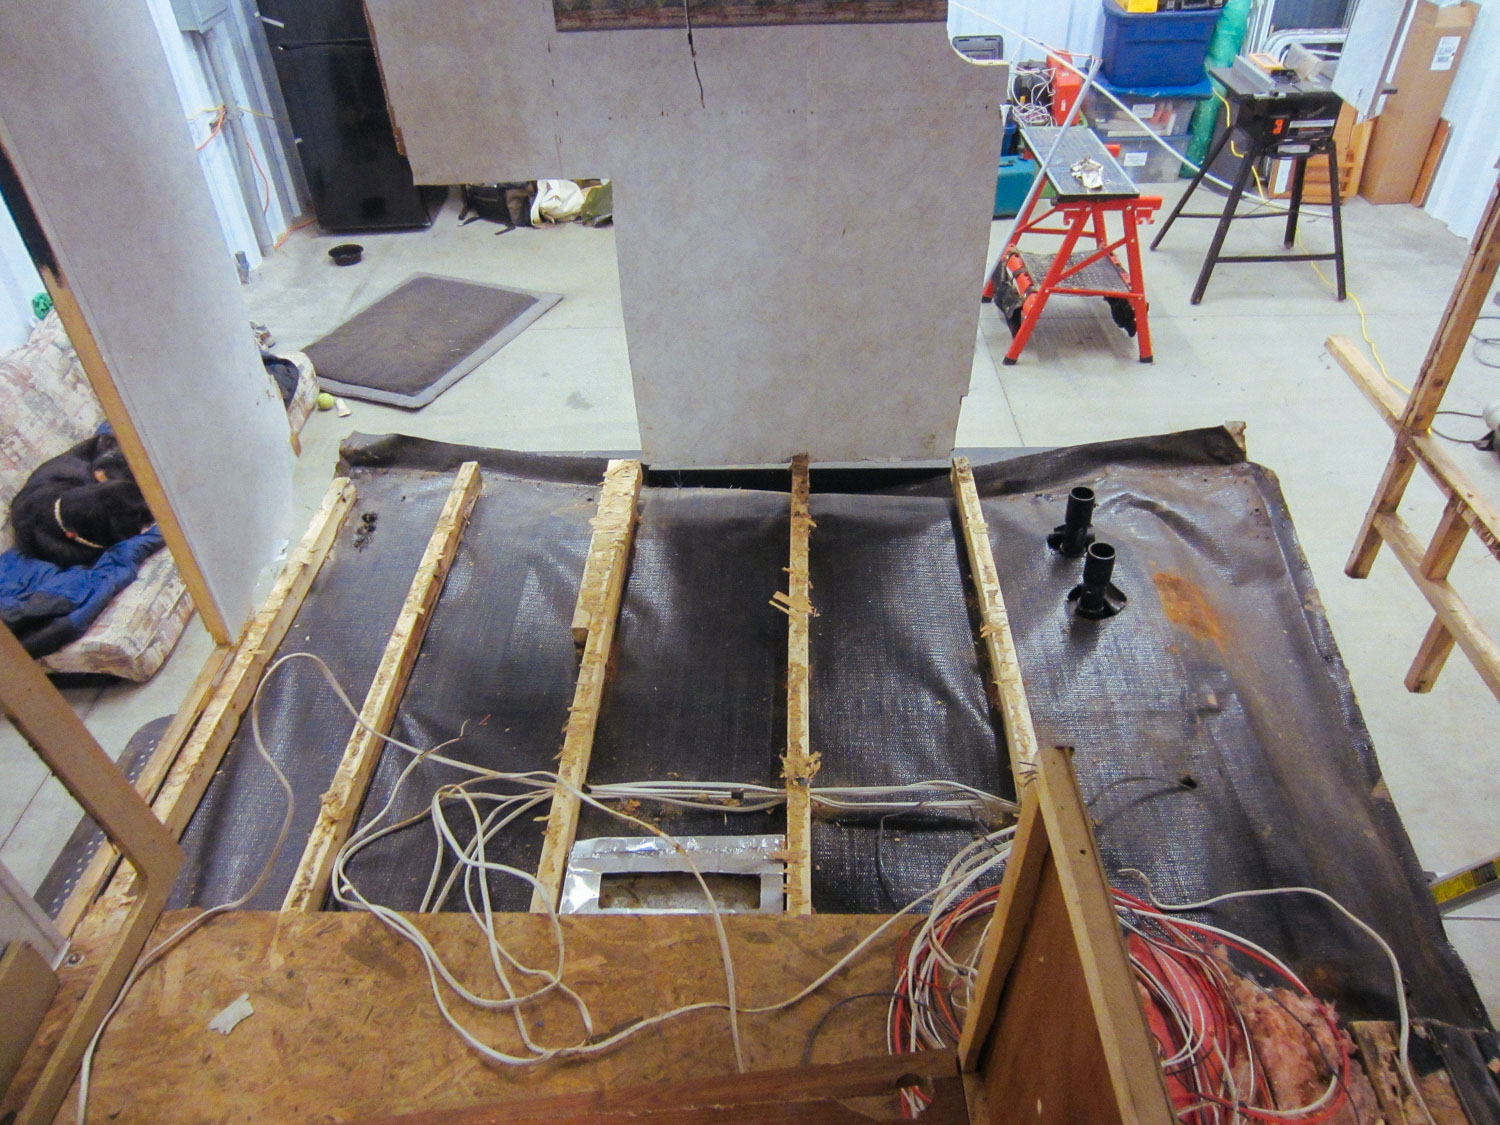 The kitchen sub-floor had to be ripped out due to water damage.